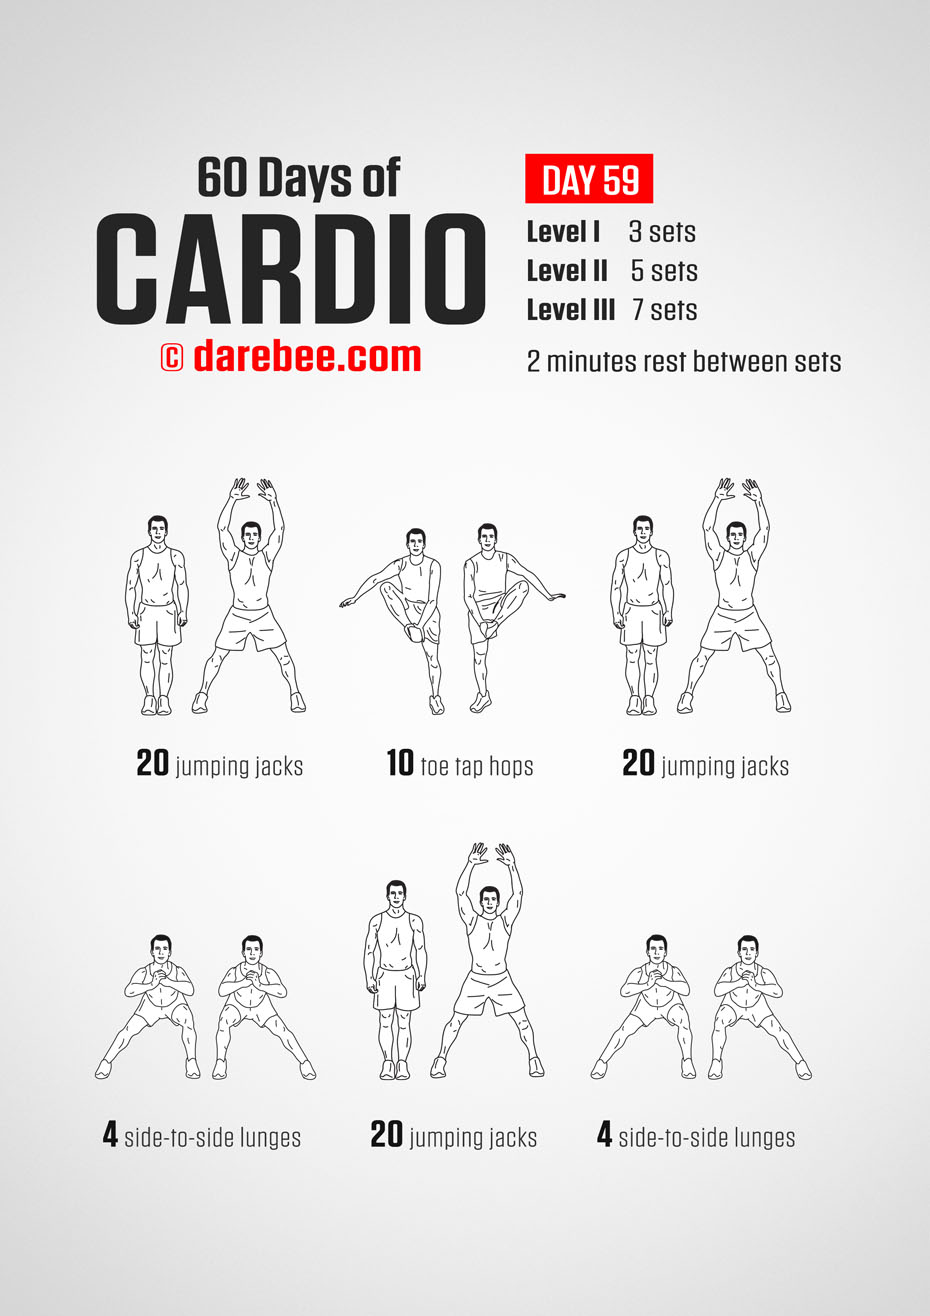 60 Days of Cardio by DAREBEE